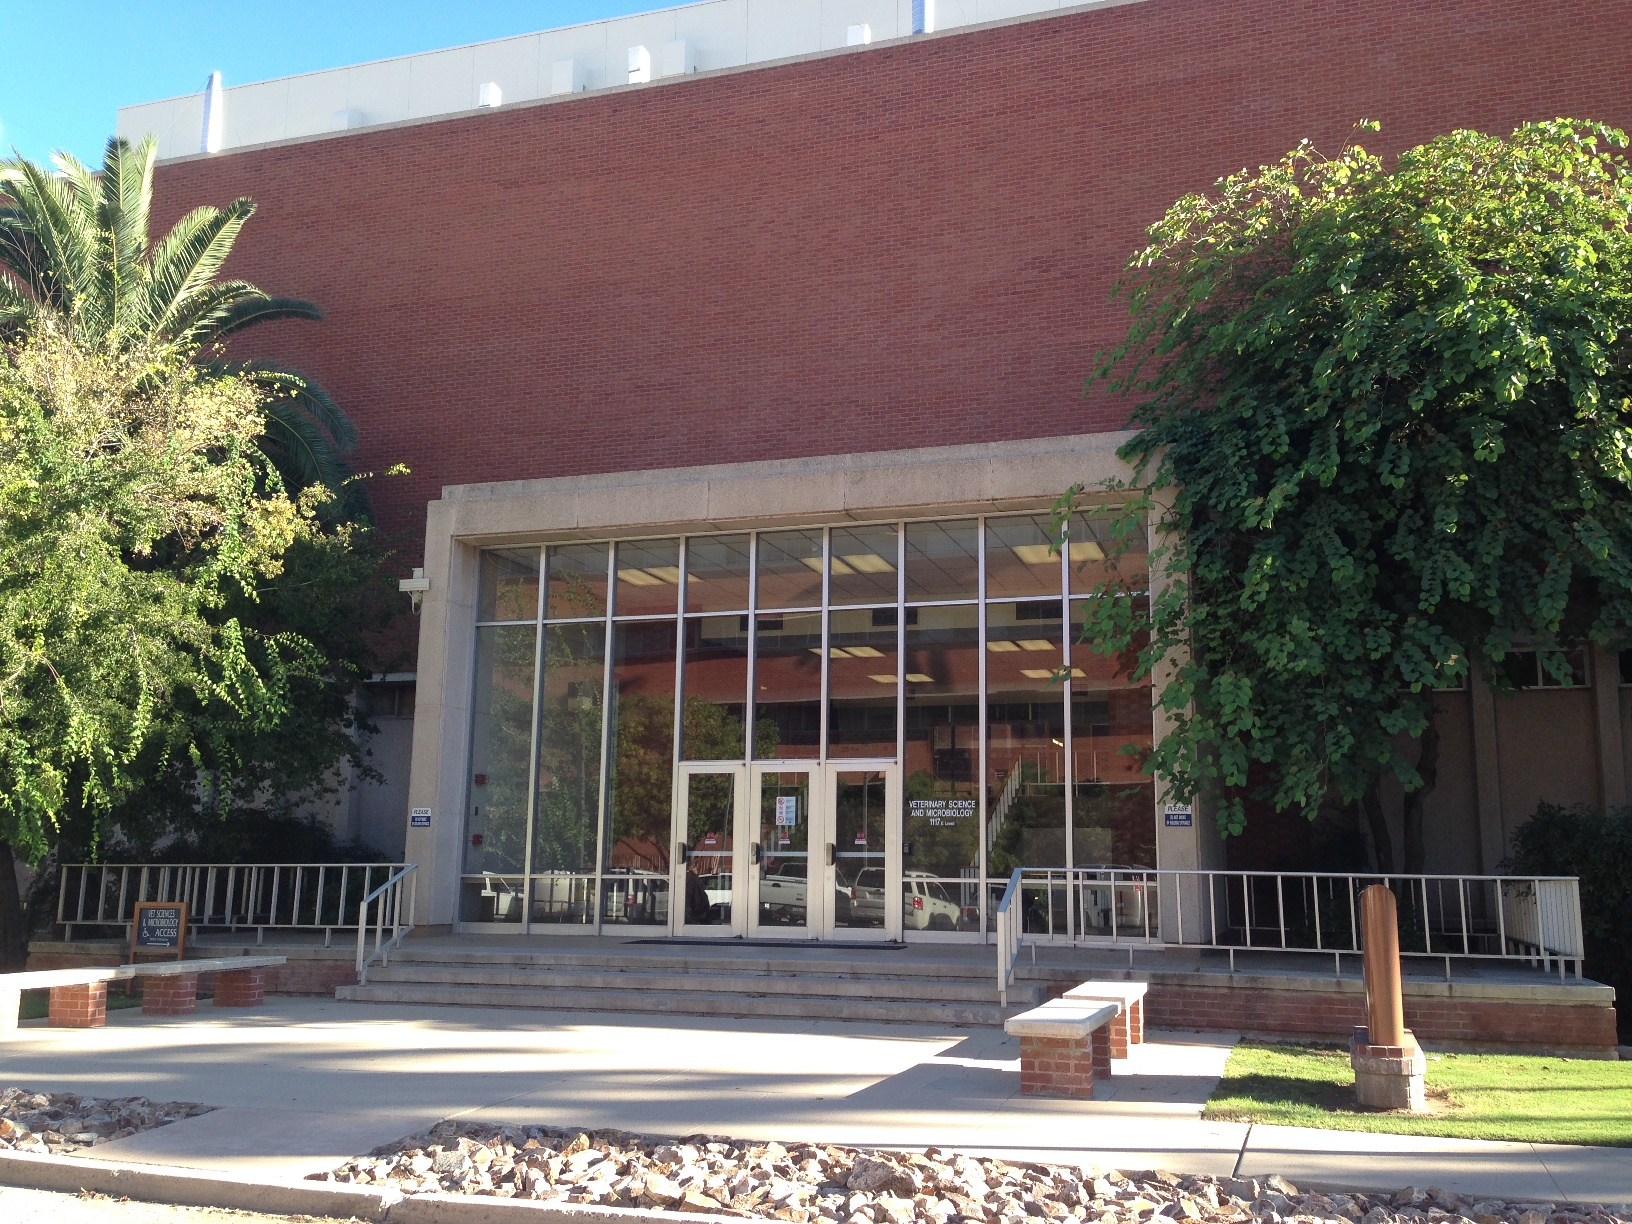 Vet Science & Microbiology Building at U of A